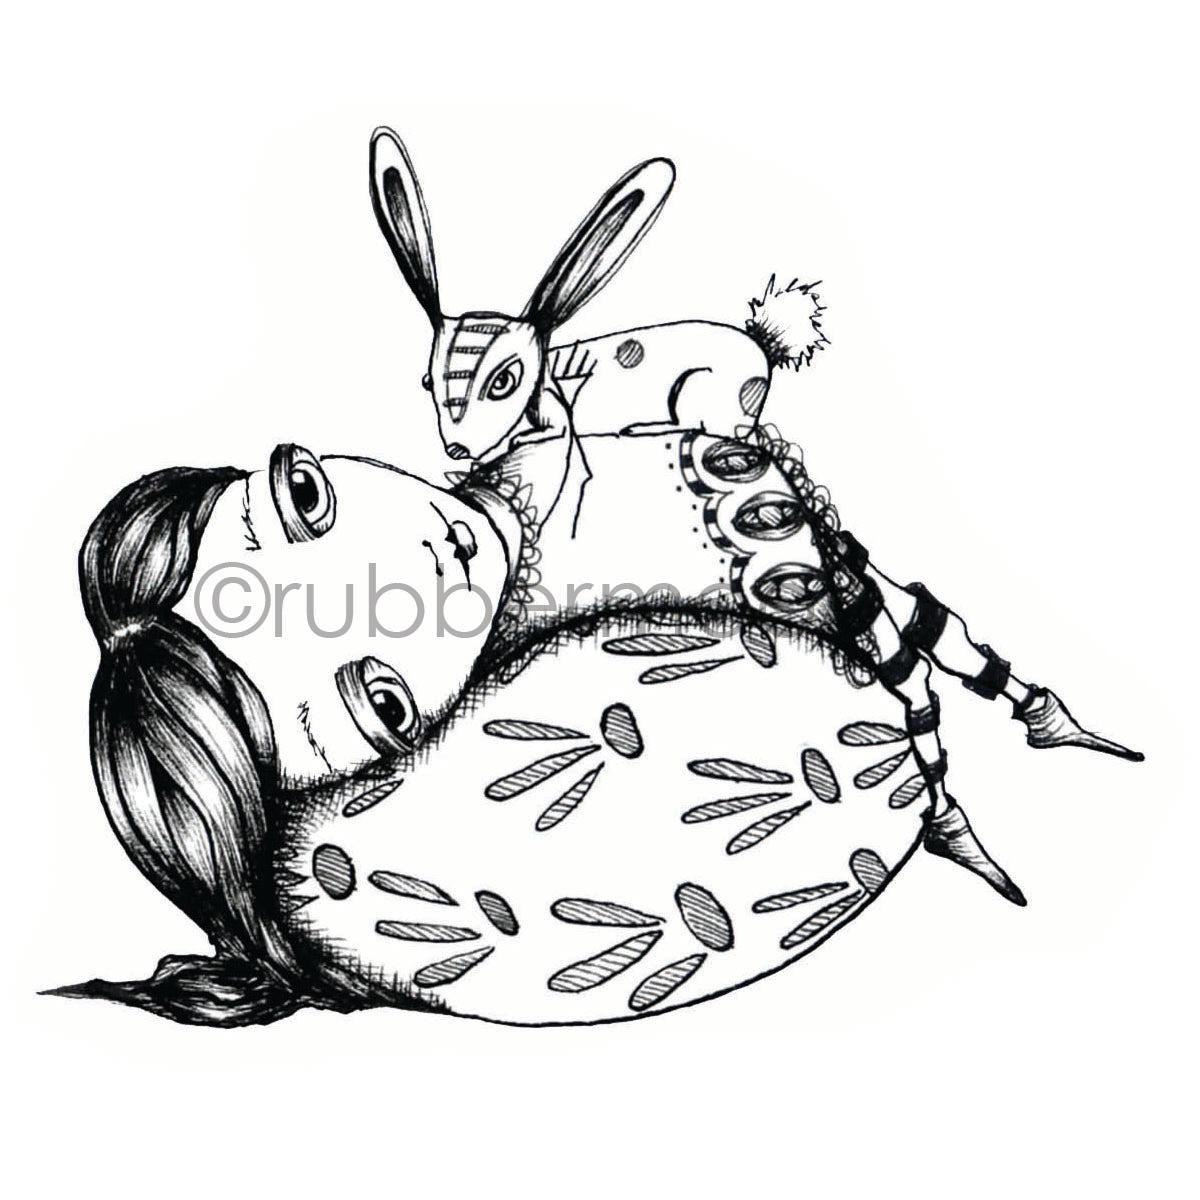 Sunny Carvalho | SC7226J - Egg-citing Life - Rubber Art Stamp